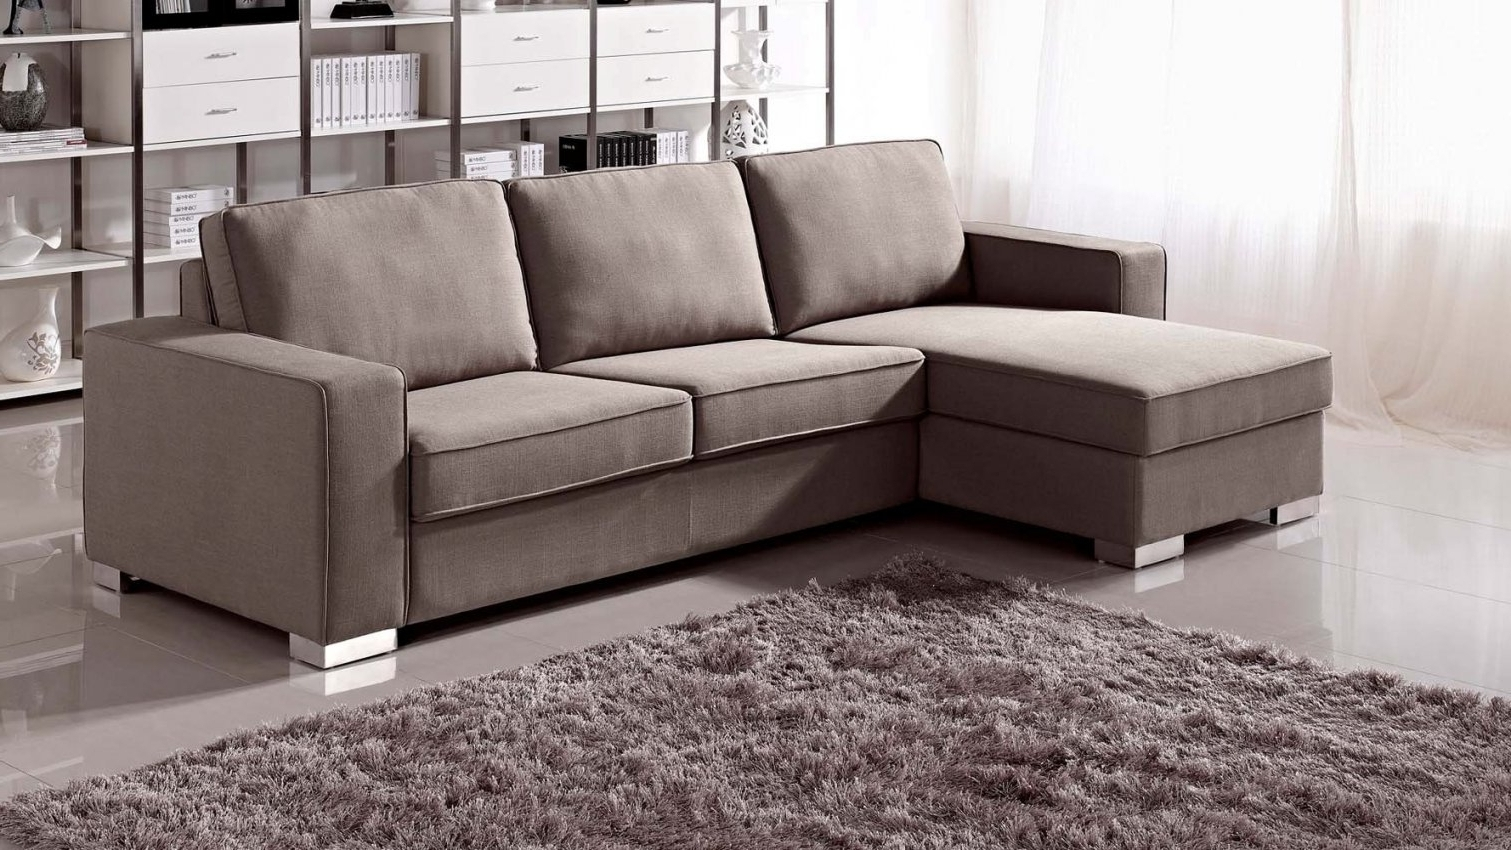 Fashionable Sectional Sleeper Sofa With Chaise 29 In Sofa Design Ideas In Chaise Sleeper Sofas (View 2 of 15)